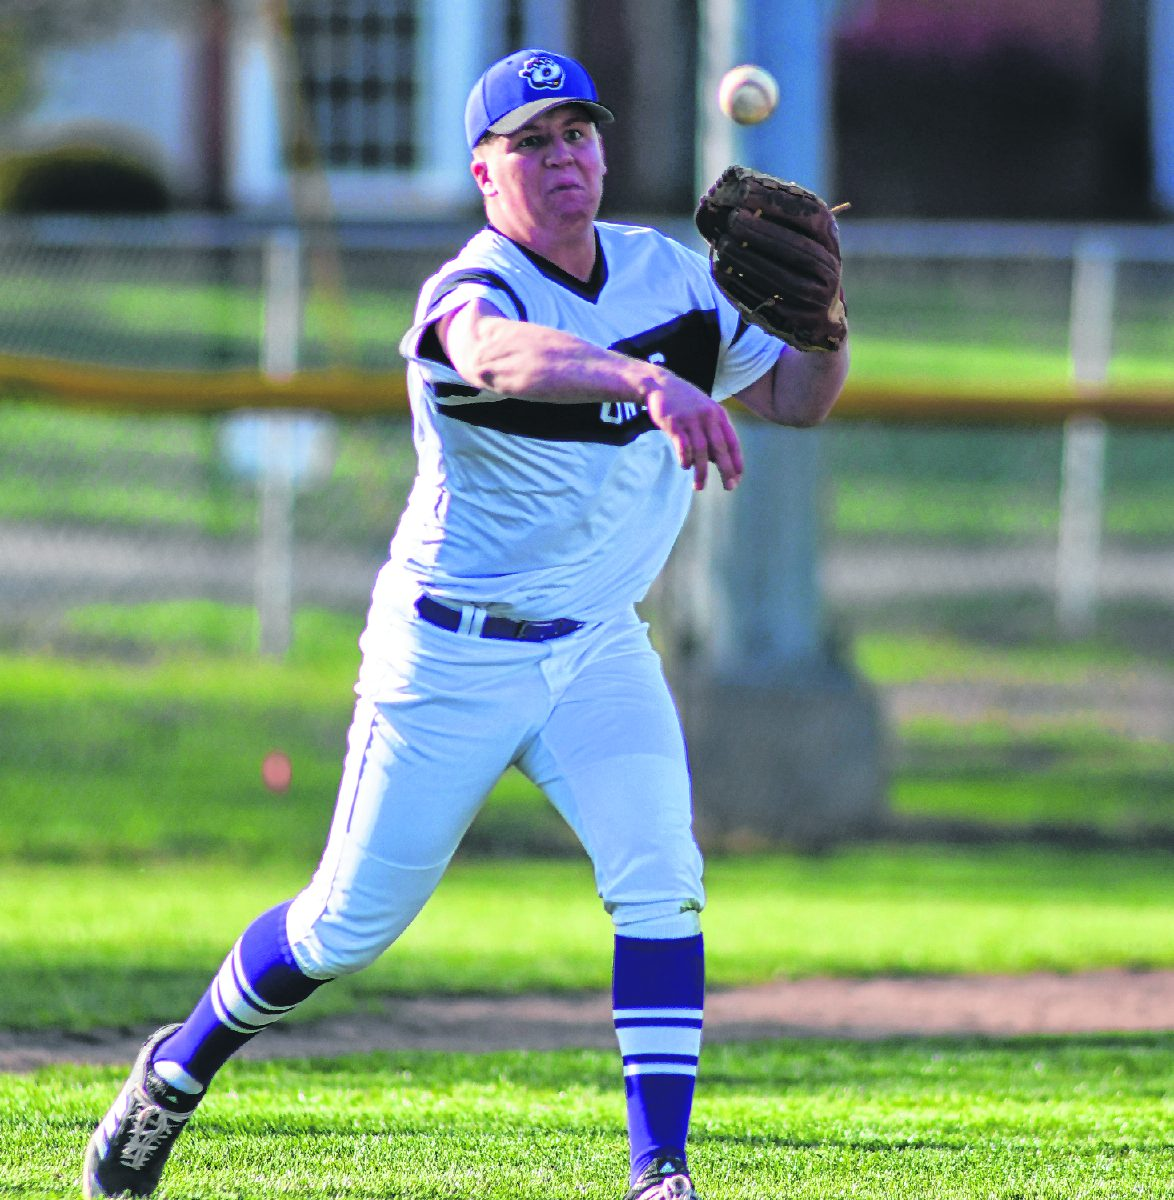 Seymour pitcher Jayden Brown throws the ball to first base for an out during a game against Jennings County on Friday.